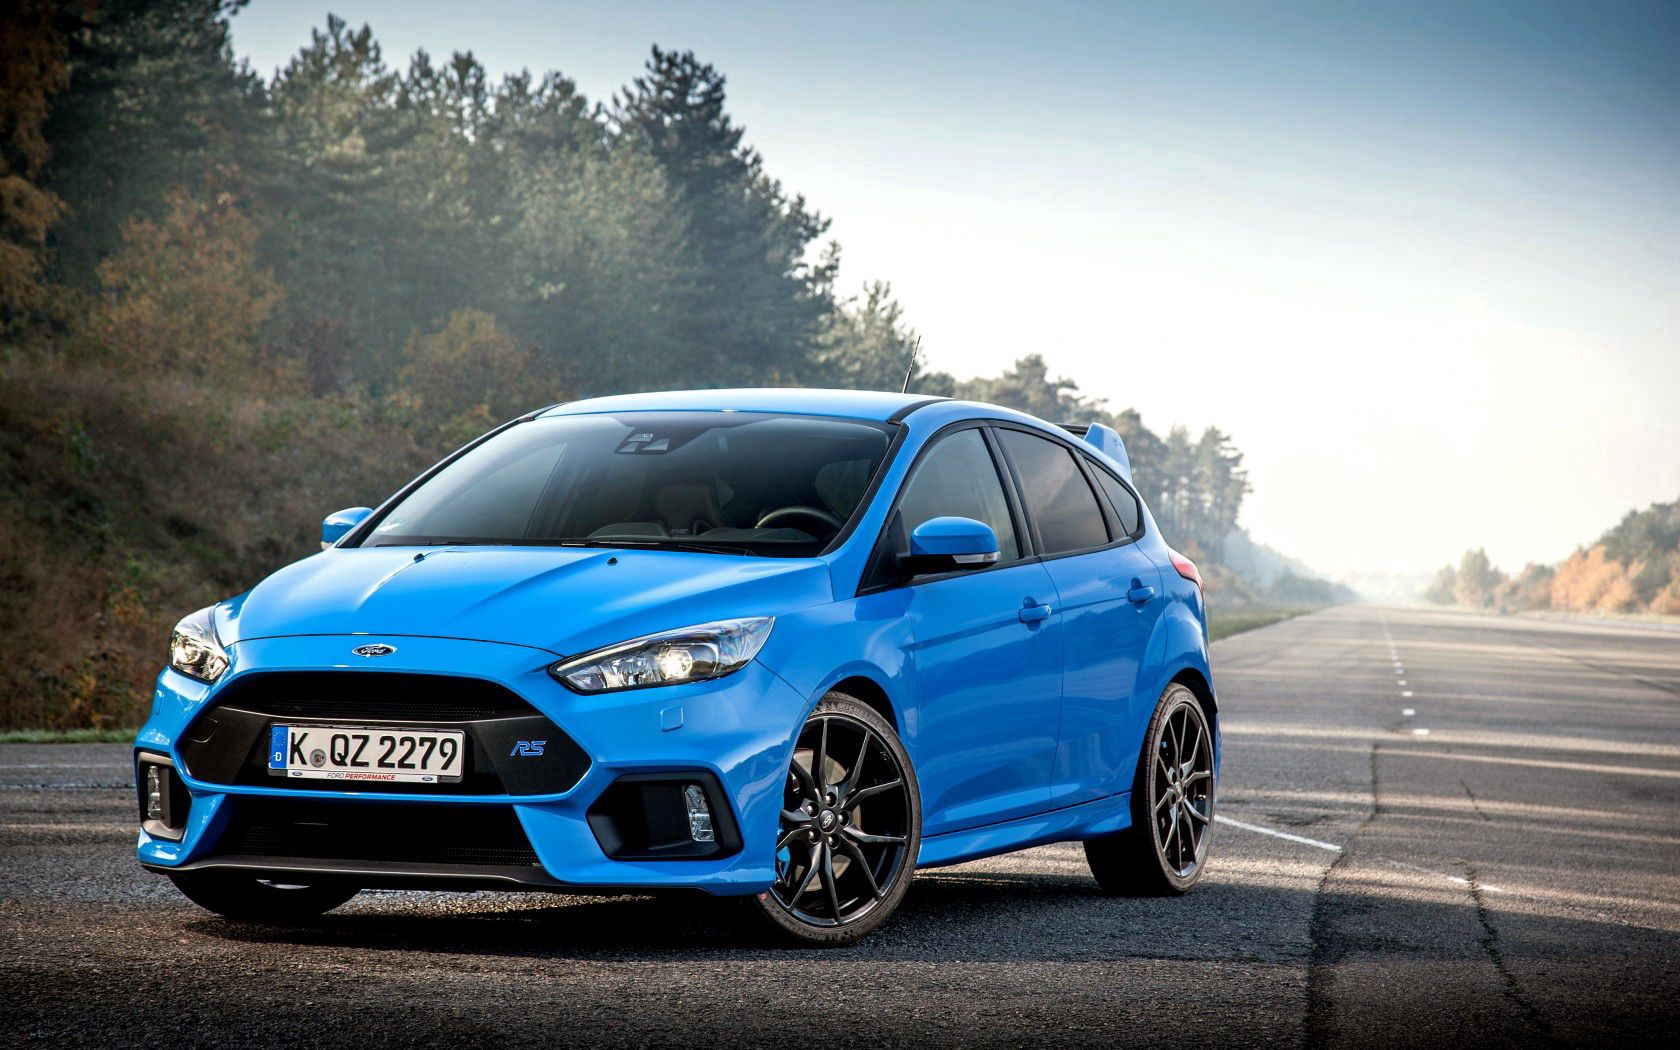 108601 download wallpaper Cars, Ford, Focus, Rs, Side View screensavers and pictures for free